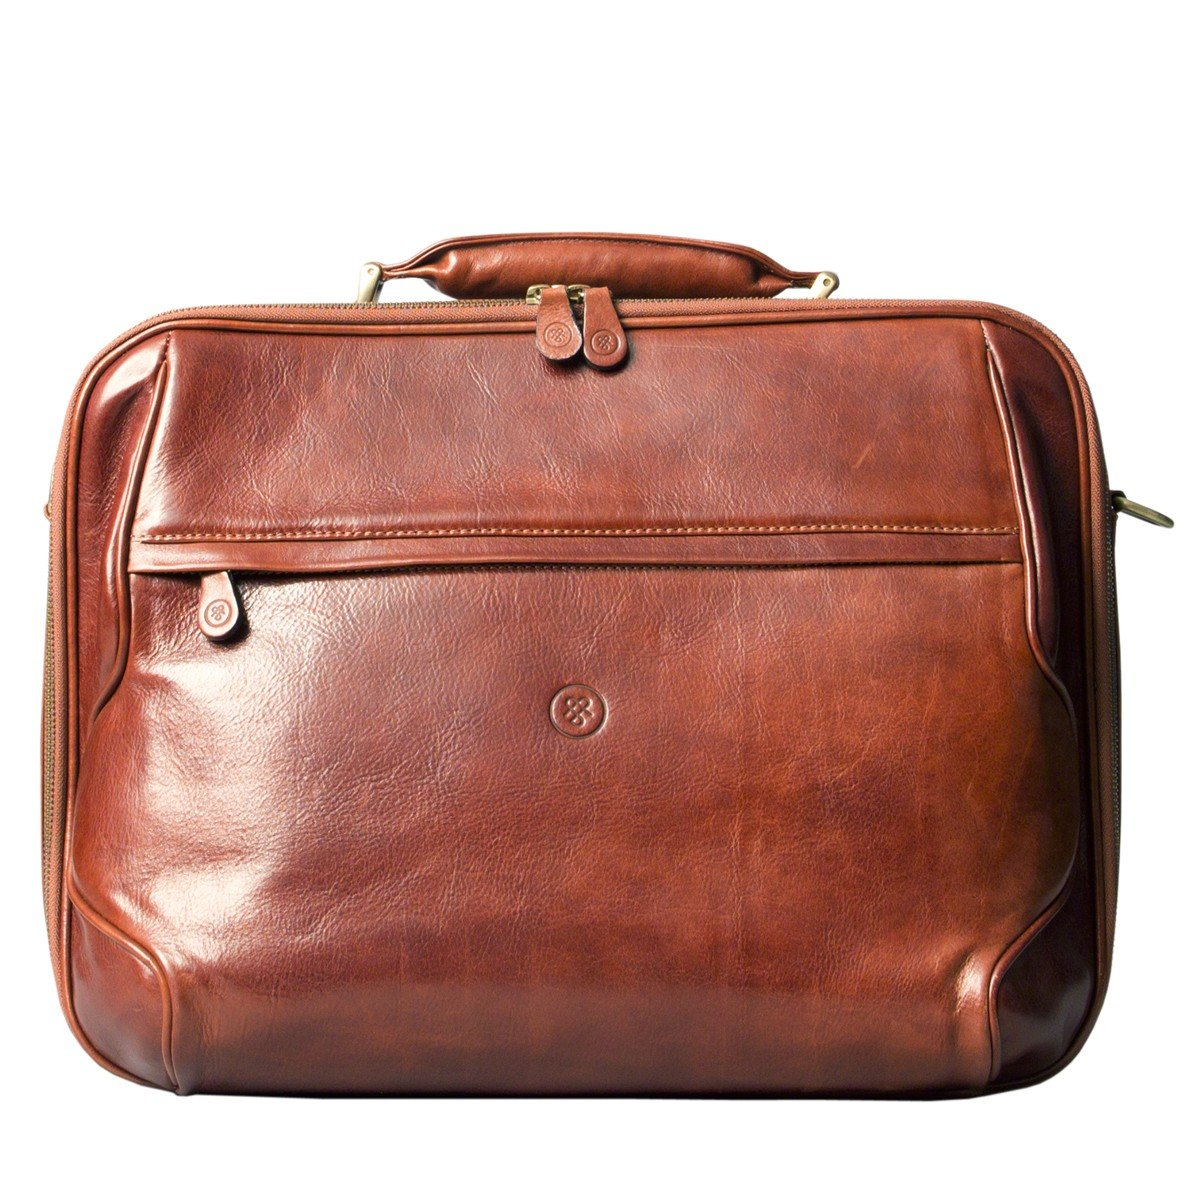 Maxwell Scott Luxury Tan Leather Computer Bag (The Volterra) - One Size